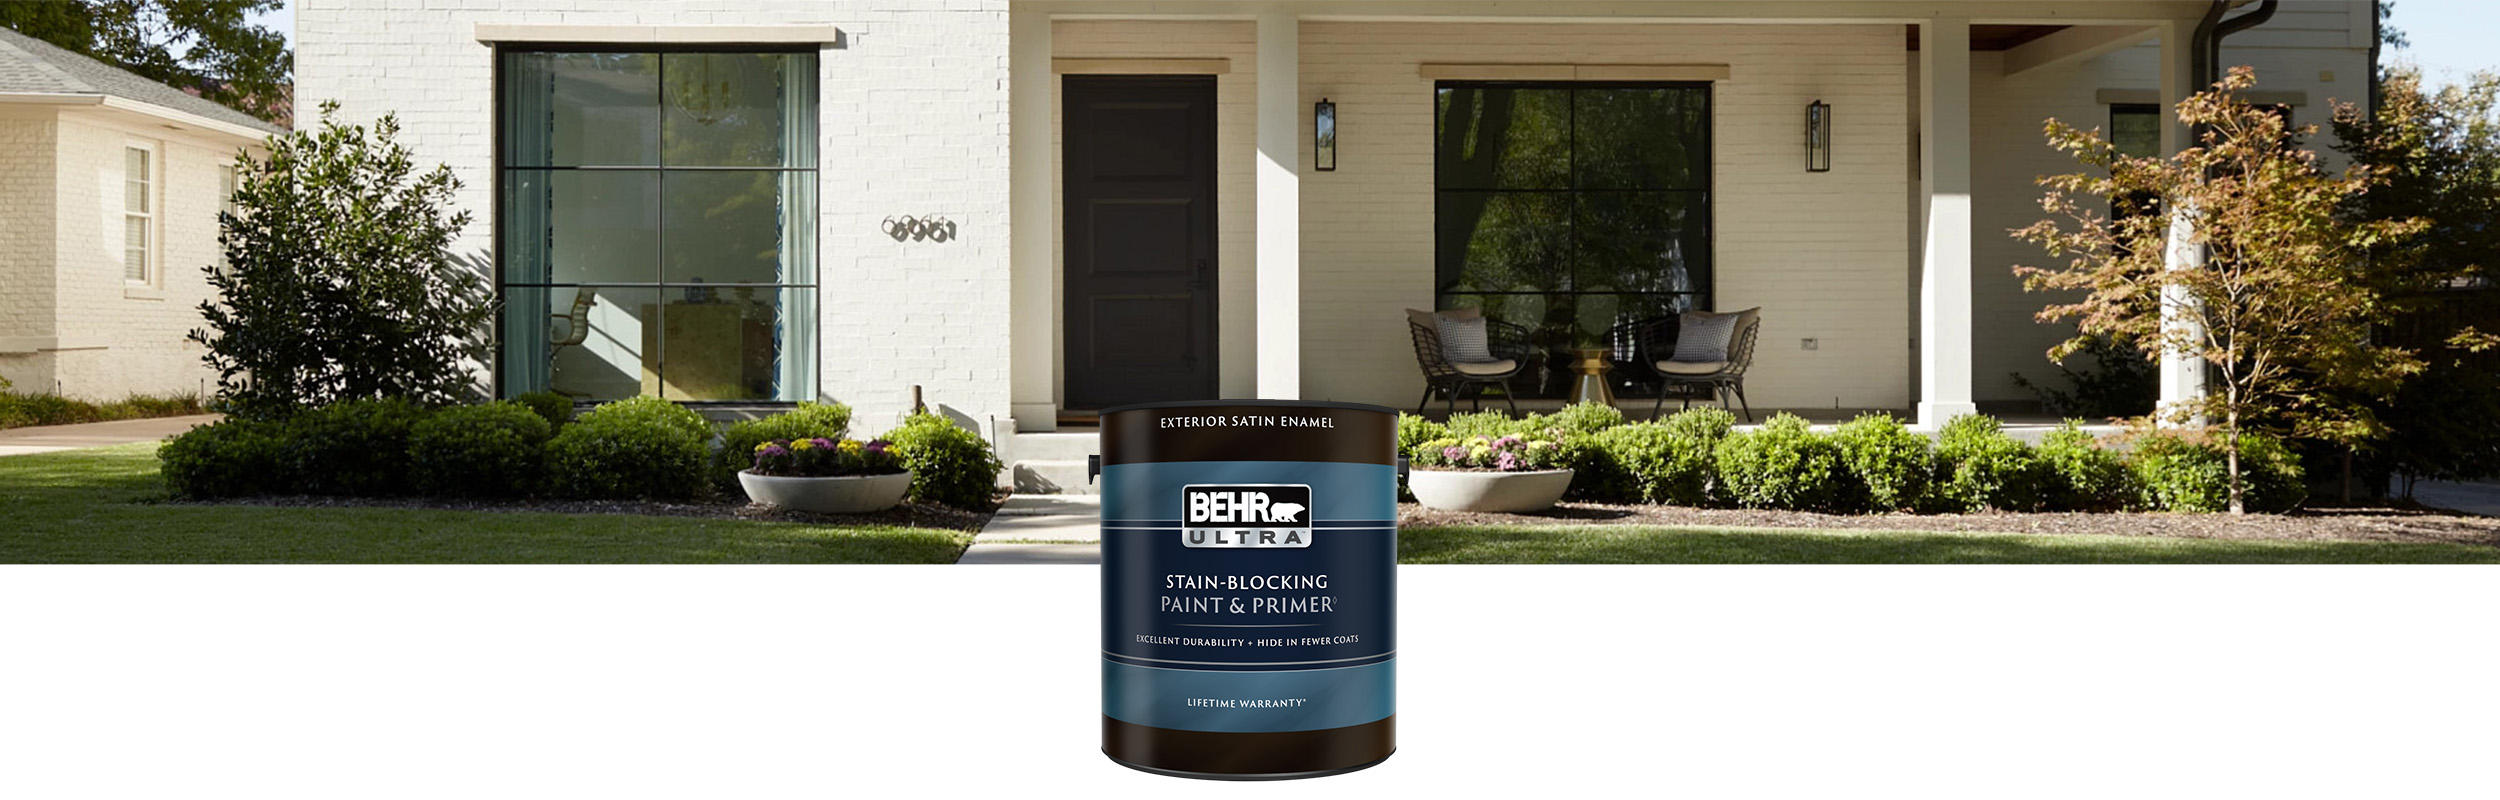 Exterior Paint And Primer Behr Ultra Exterior Paint Behr